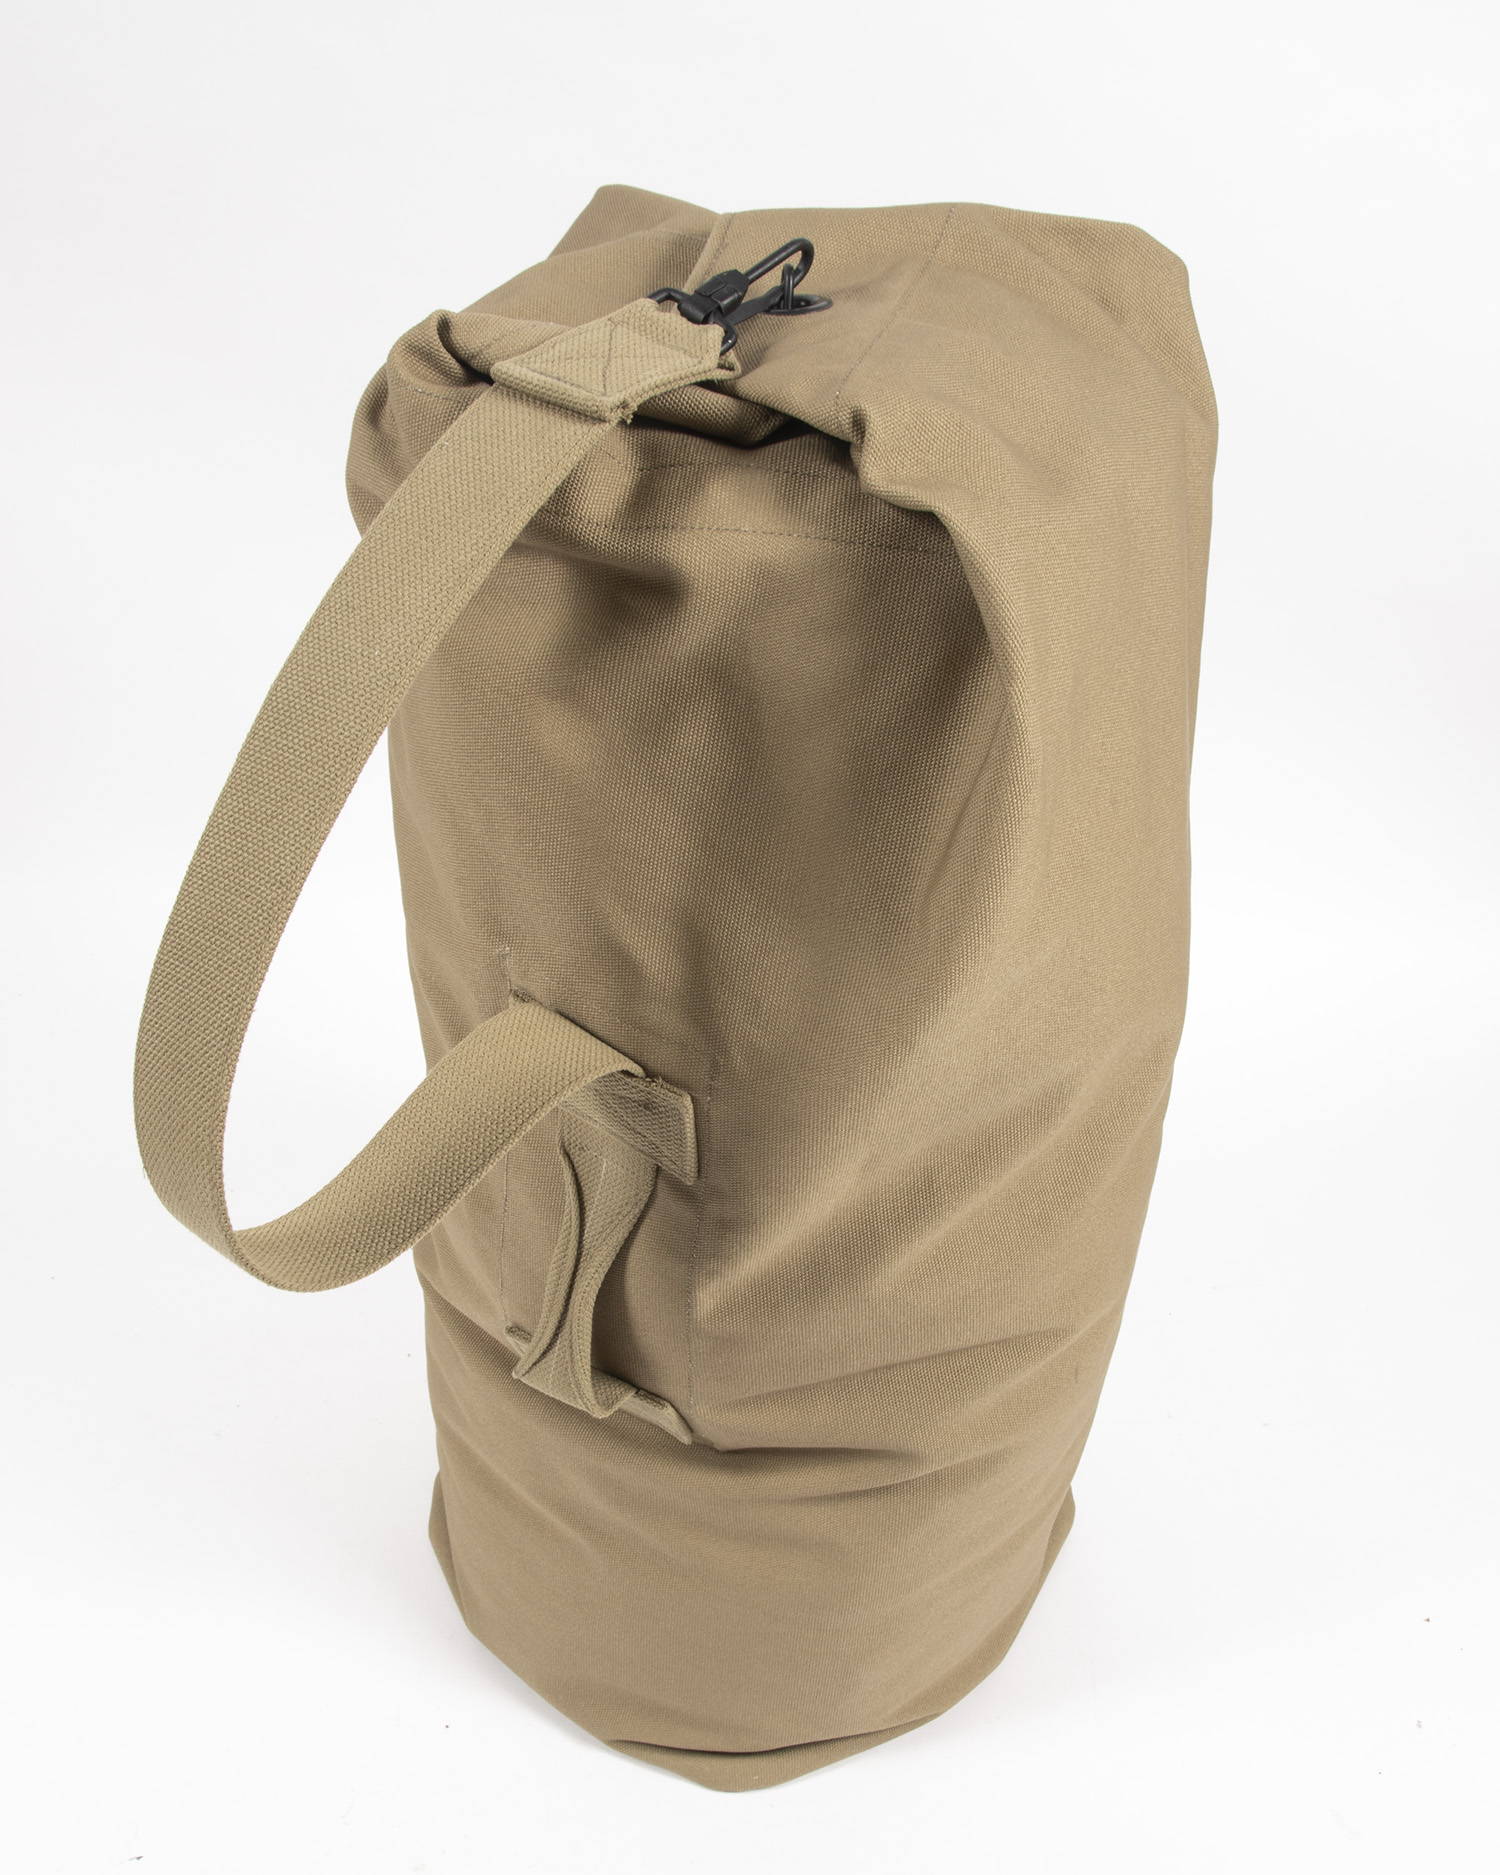 a1f13d4be Early in the War, the Barracks Bag was used as the carry all for each  soldier, but it was rapidly found to be too small and difficult to carry  when heavily ...